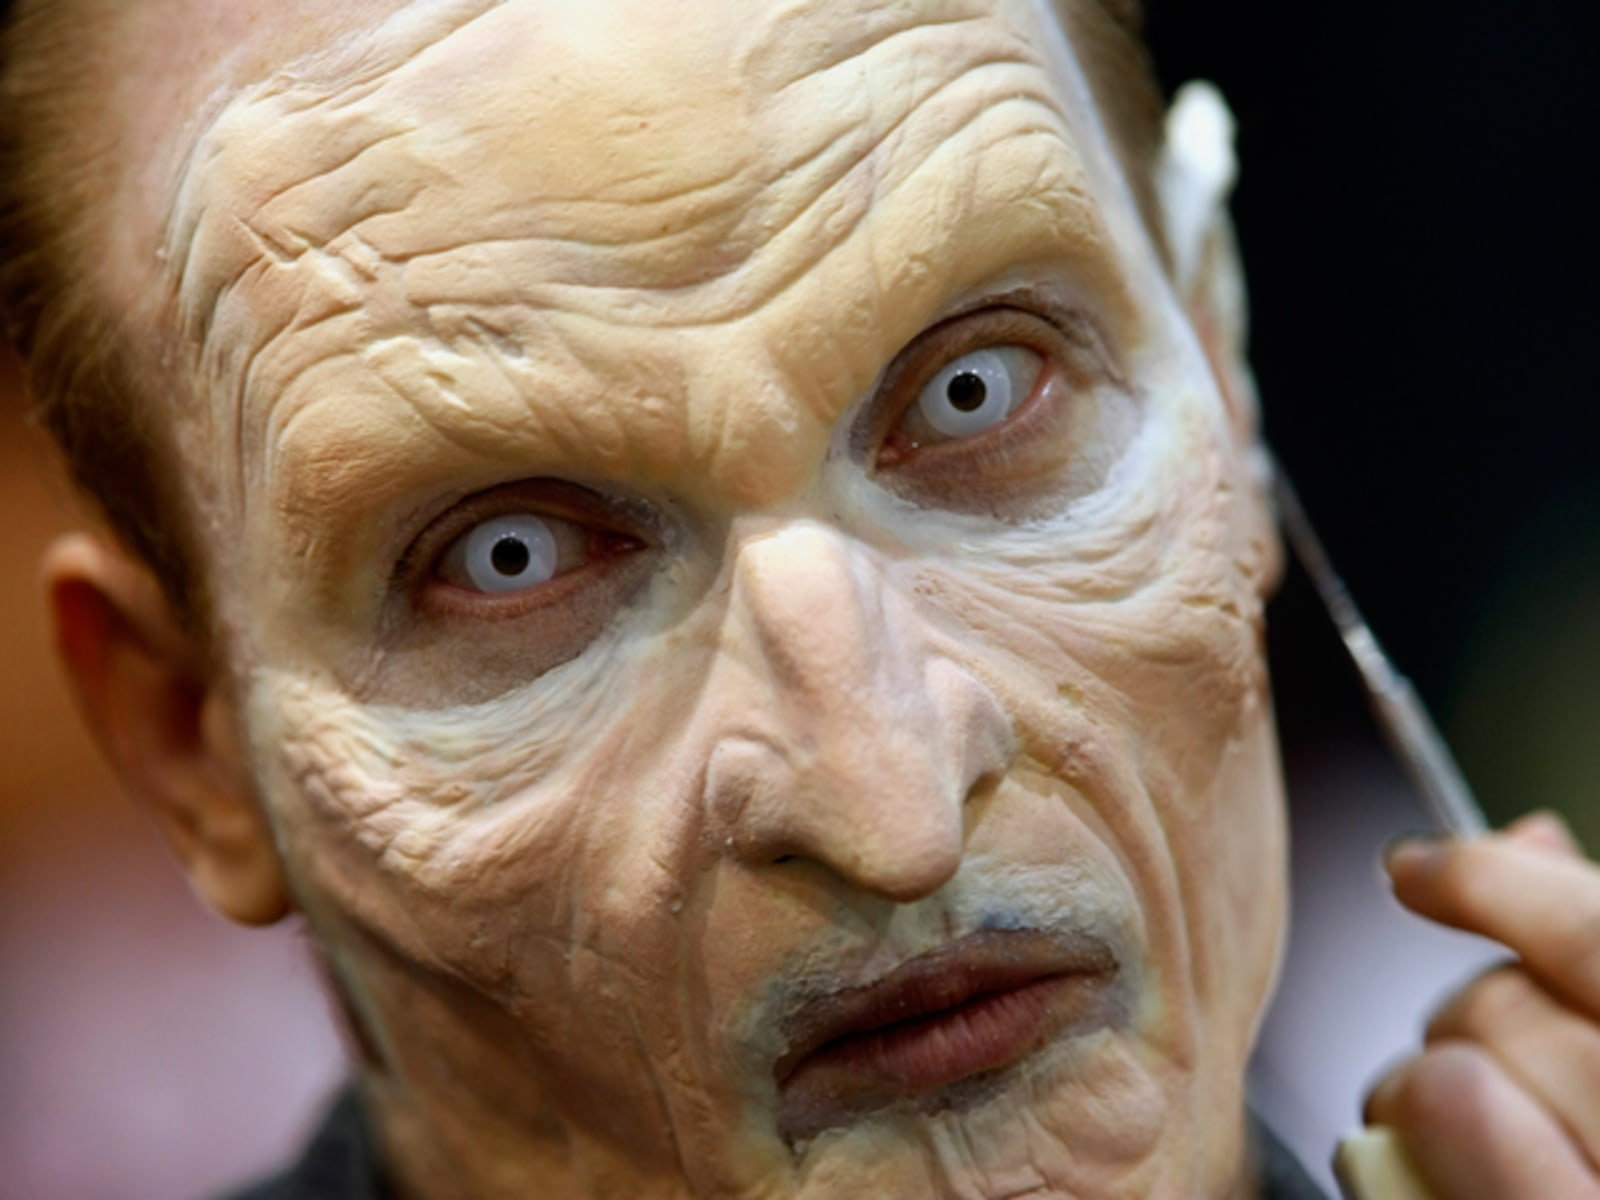 Image: A make-up artist works on a man's face while attending the 40th annual  Comic Con conference in San Diego